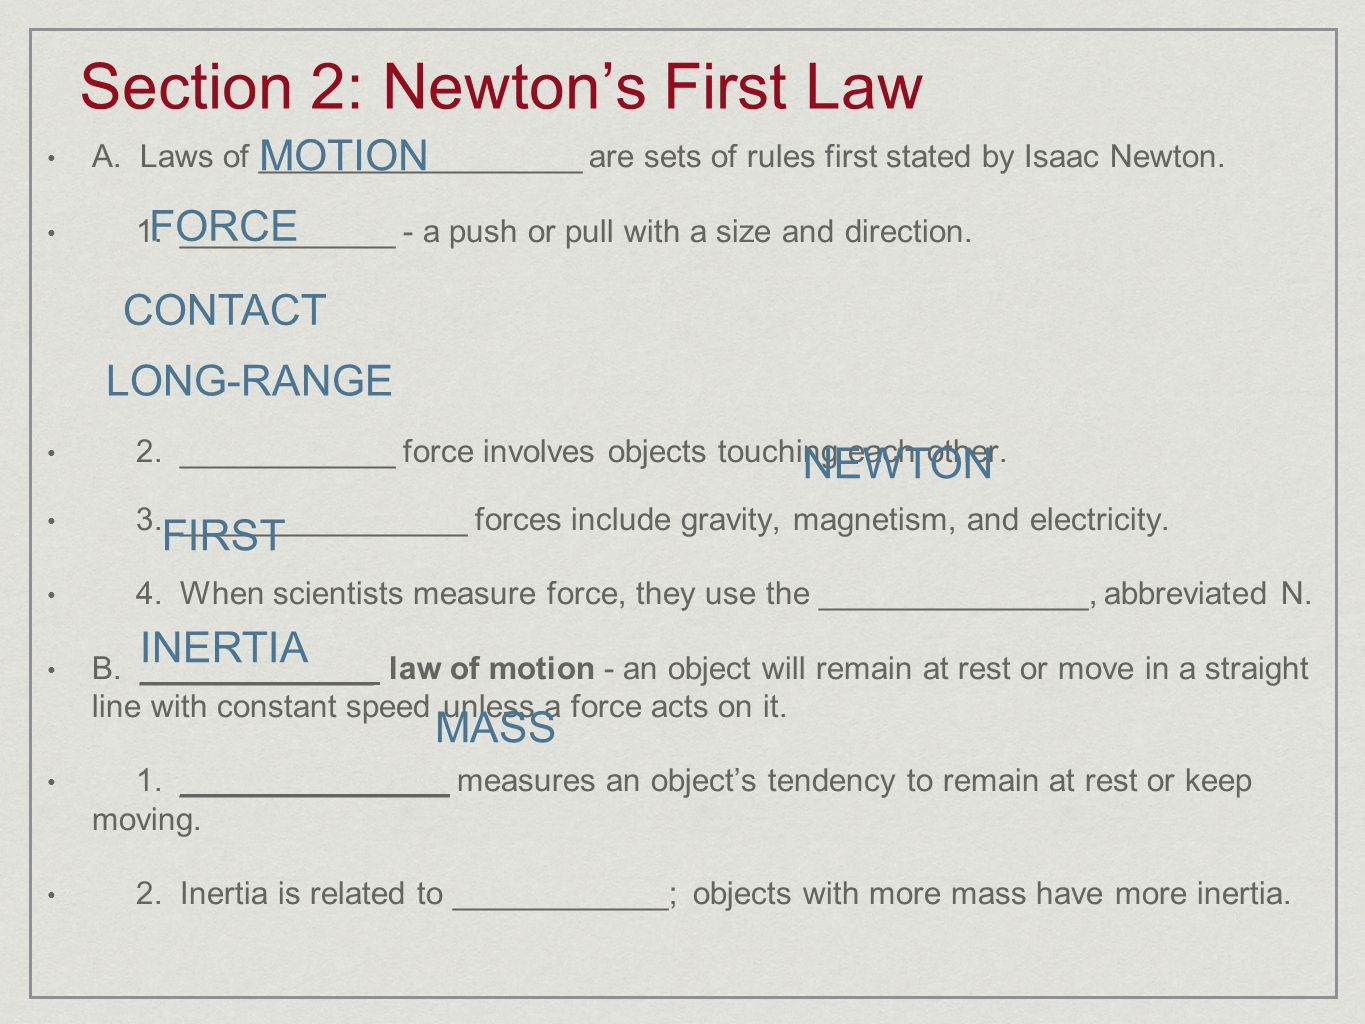 Inertia Lab: Testing Newtons First Law of Motion by Ian Williamson